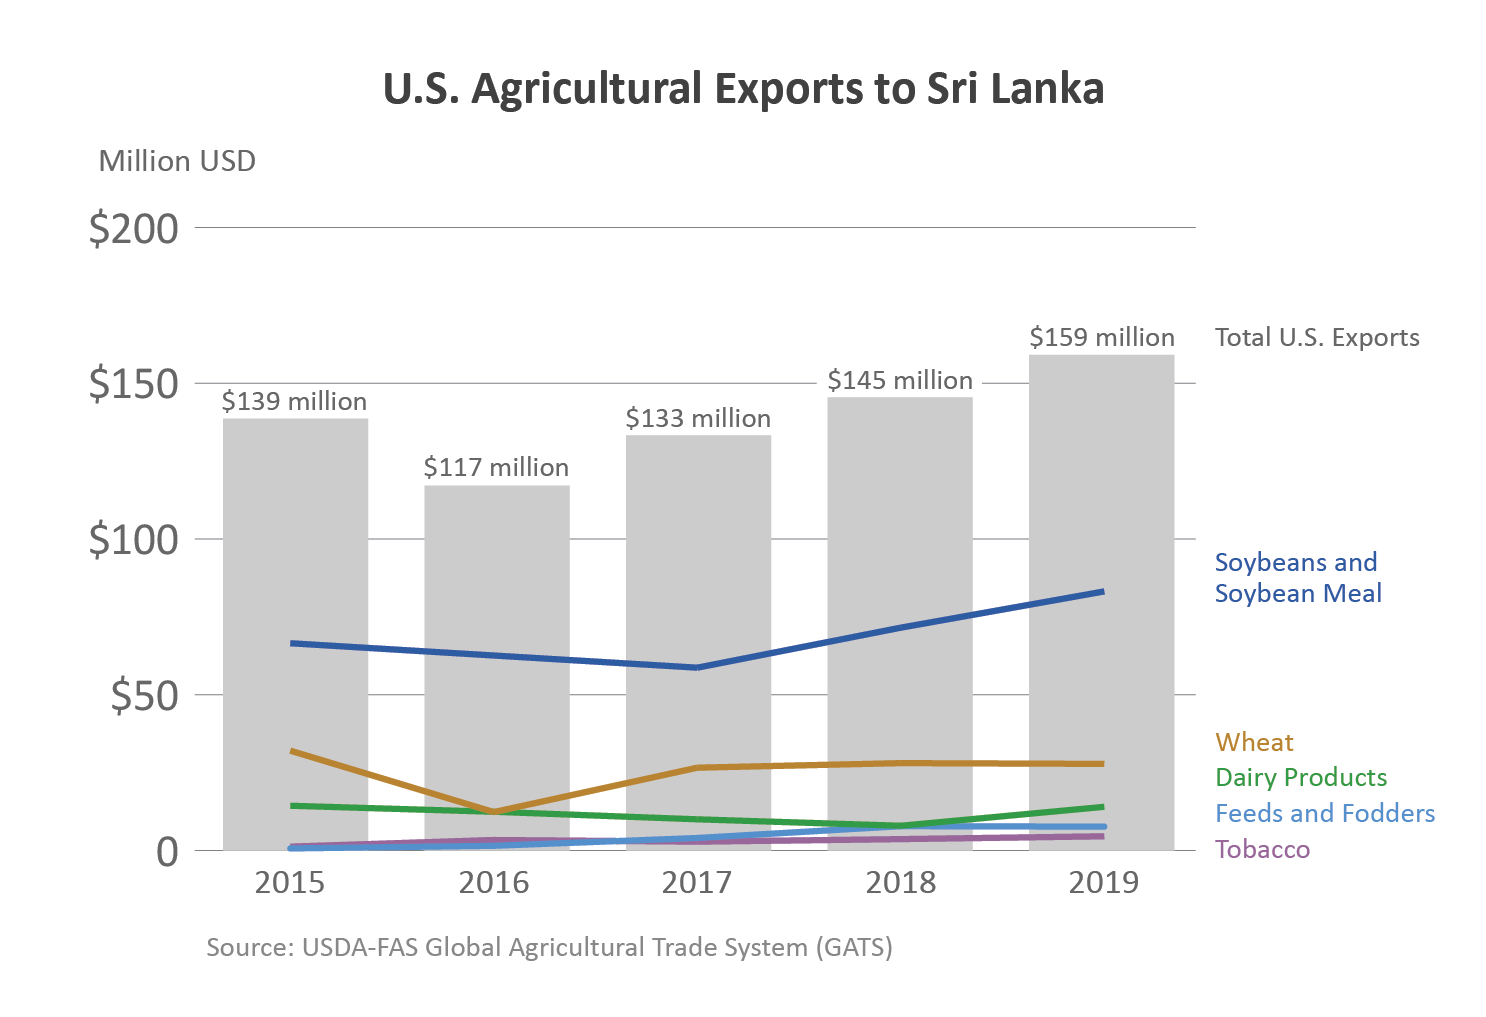 Chart showing U.S. agricultural exports to Sri Lanka.  In 2019, ag exports totaled $159 million.